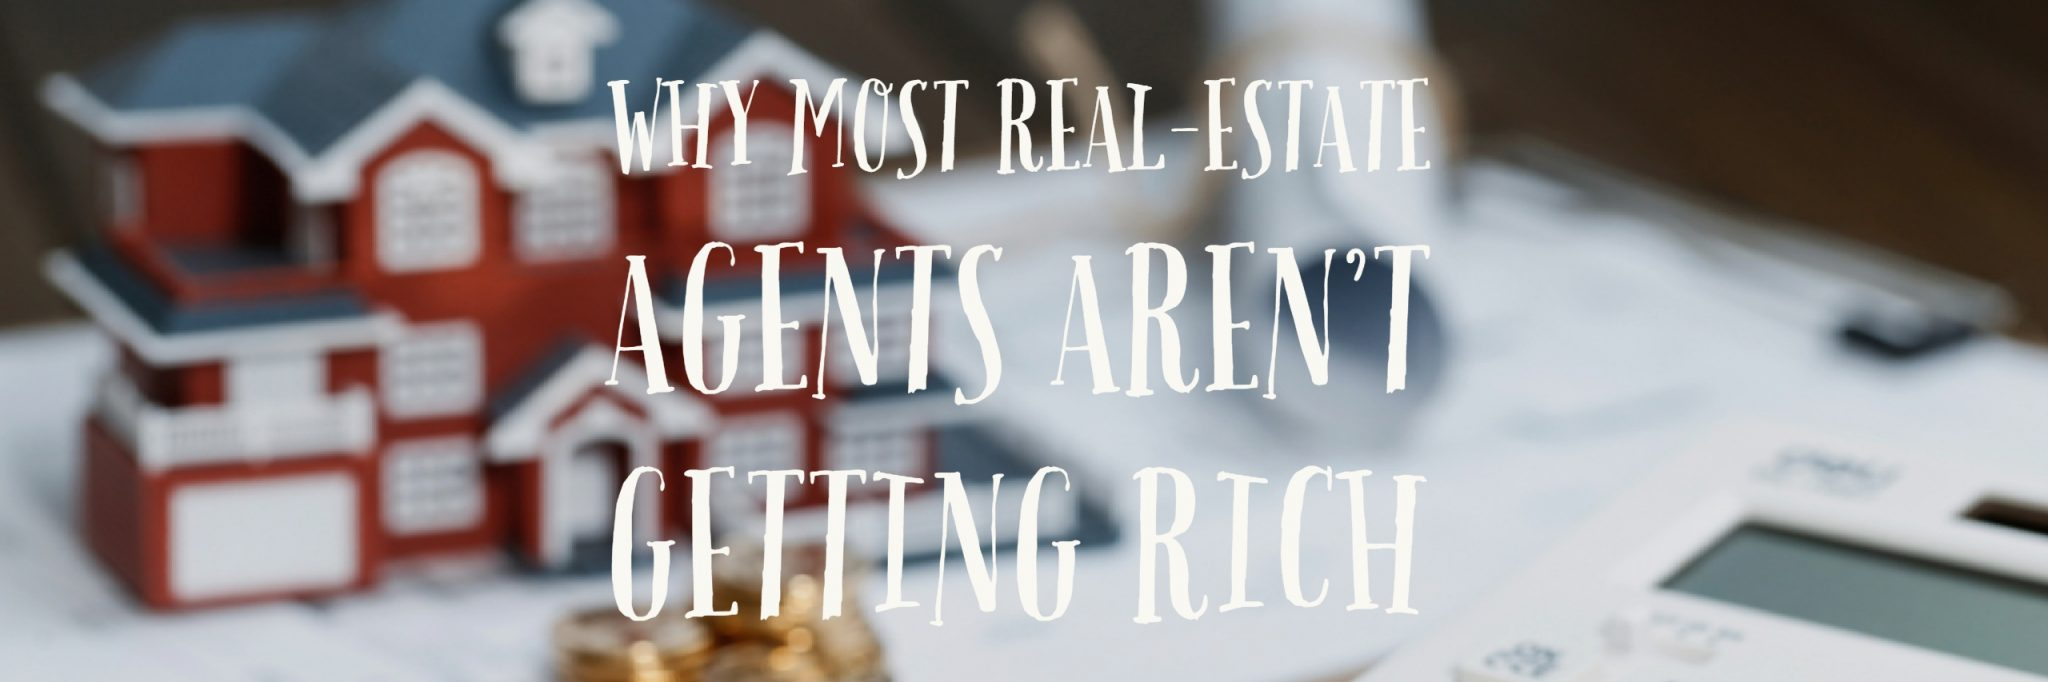 Best real estate company to work for best training for new real estate agents real estate agent coaching real estate agent training best real estate company in Los Angeles (10)